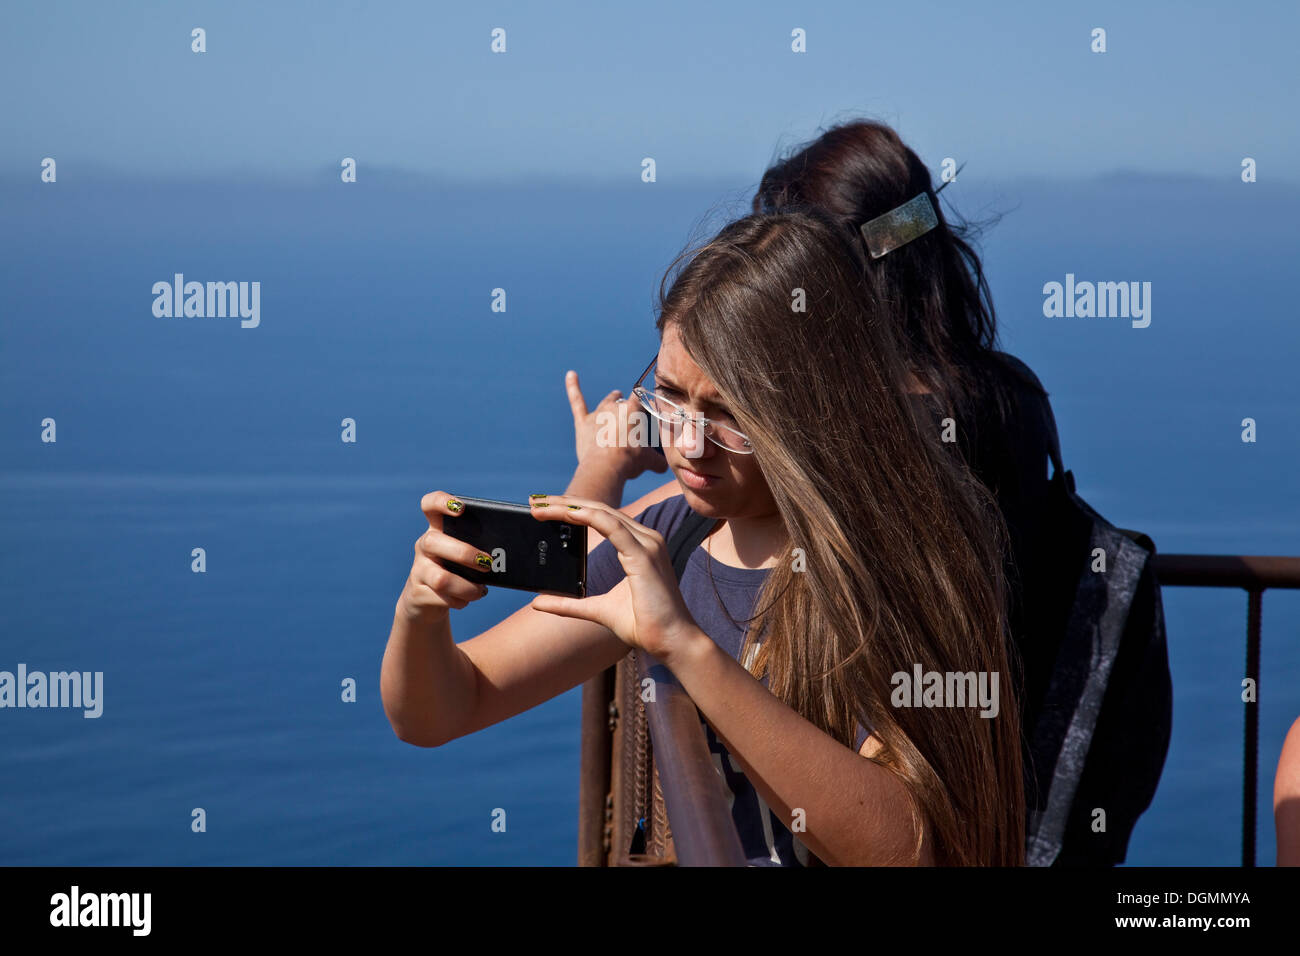 A Tourist Taking A Photograph of Shipwreck Beach From The Viewpoint, Zakynthos (Zante) Island Greece - Stock Image